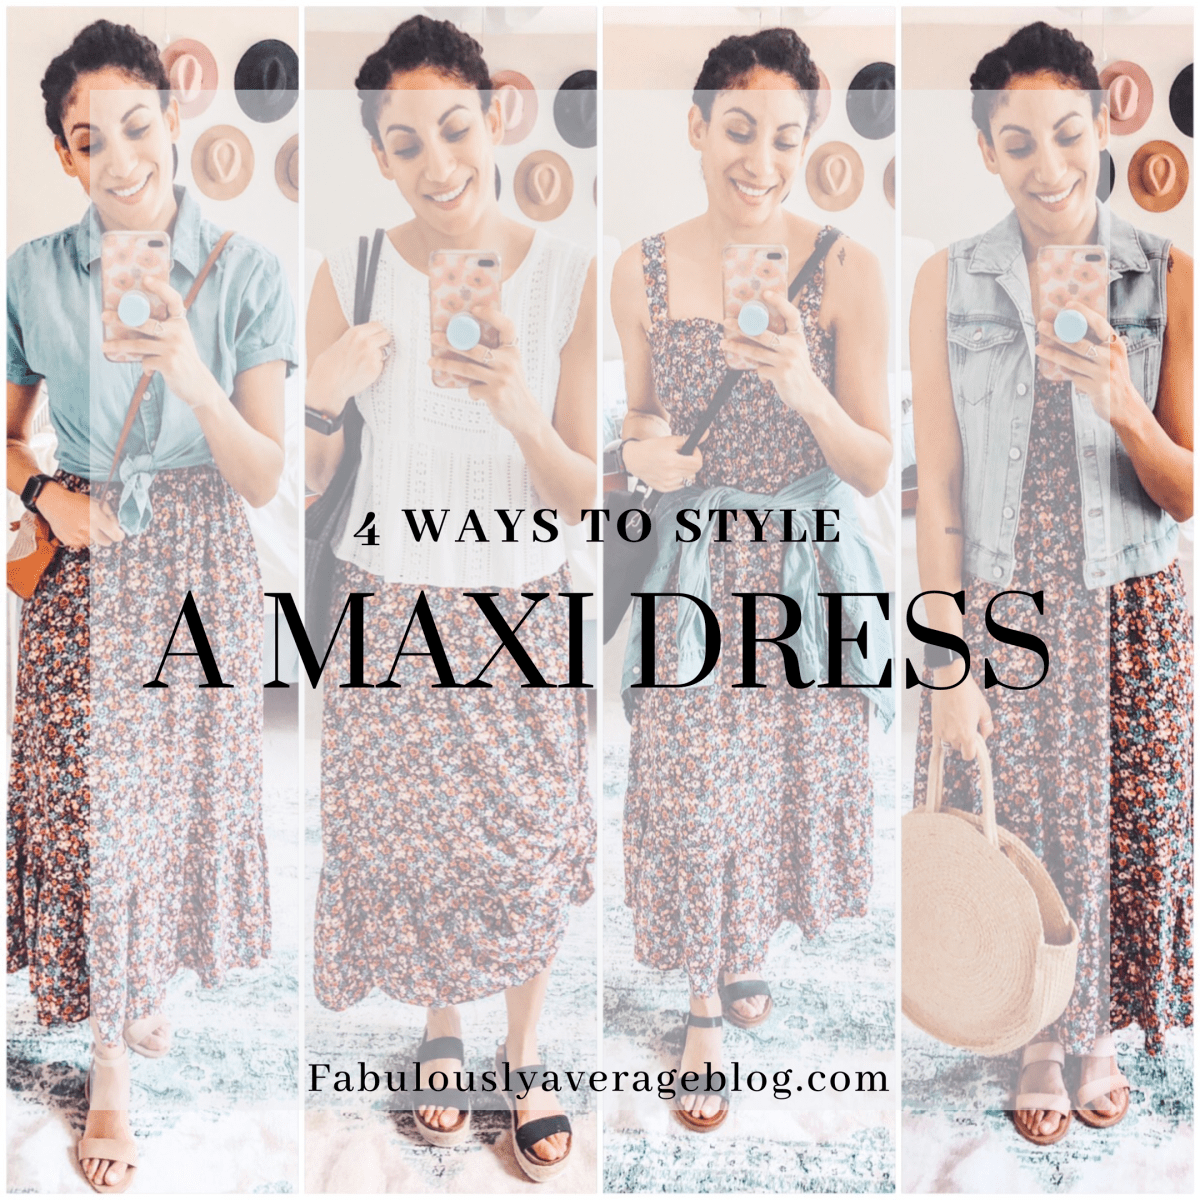 4 Ways to Style a Maxi Dress